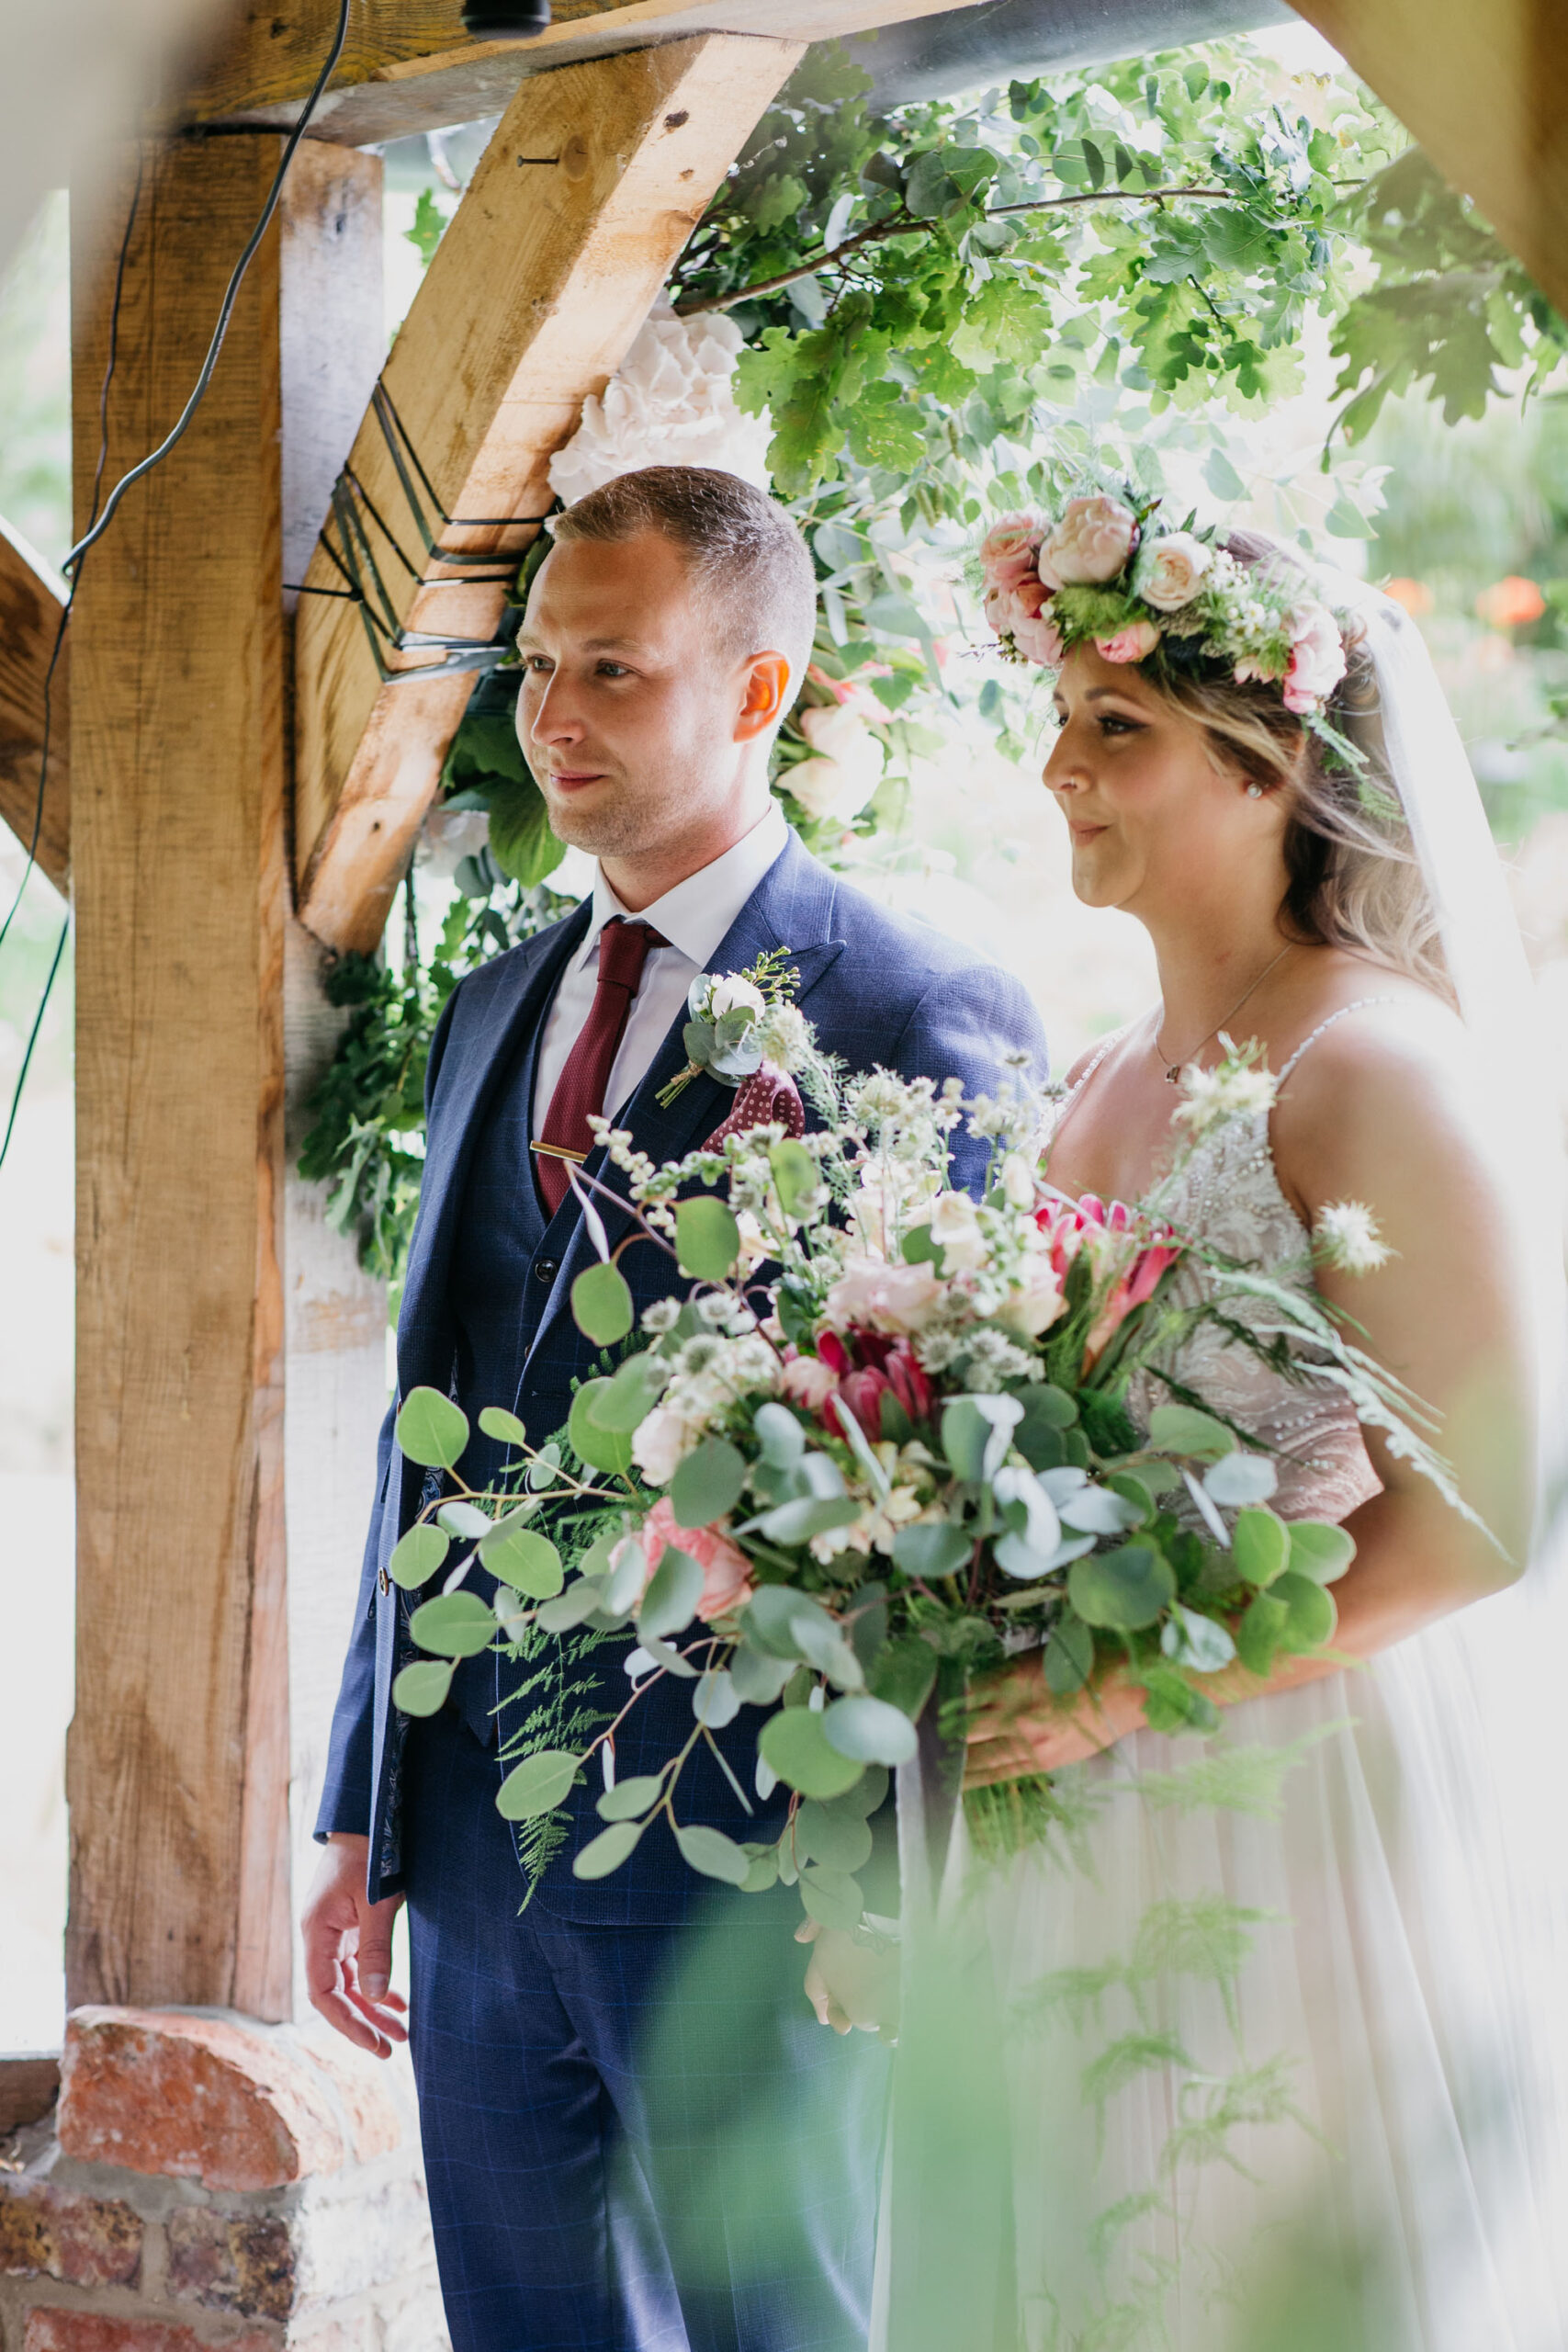 Yorkshire wedding photography of Alicia and Phil. She wears a white boho style dress and he's in a blue ckech suit. She has a full flower crown in delicate pinks, and they look happy. Image by John Hope Photography